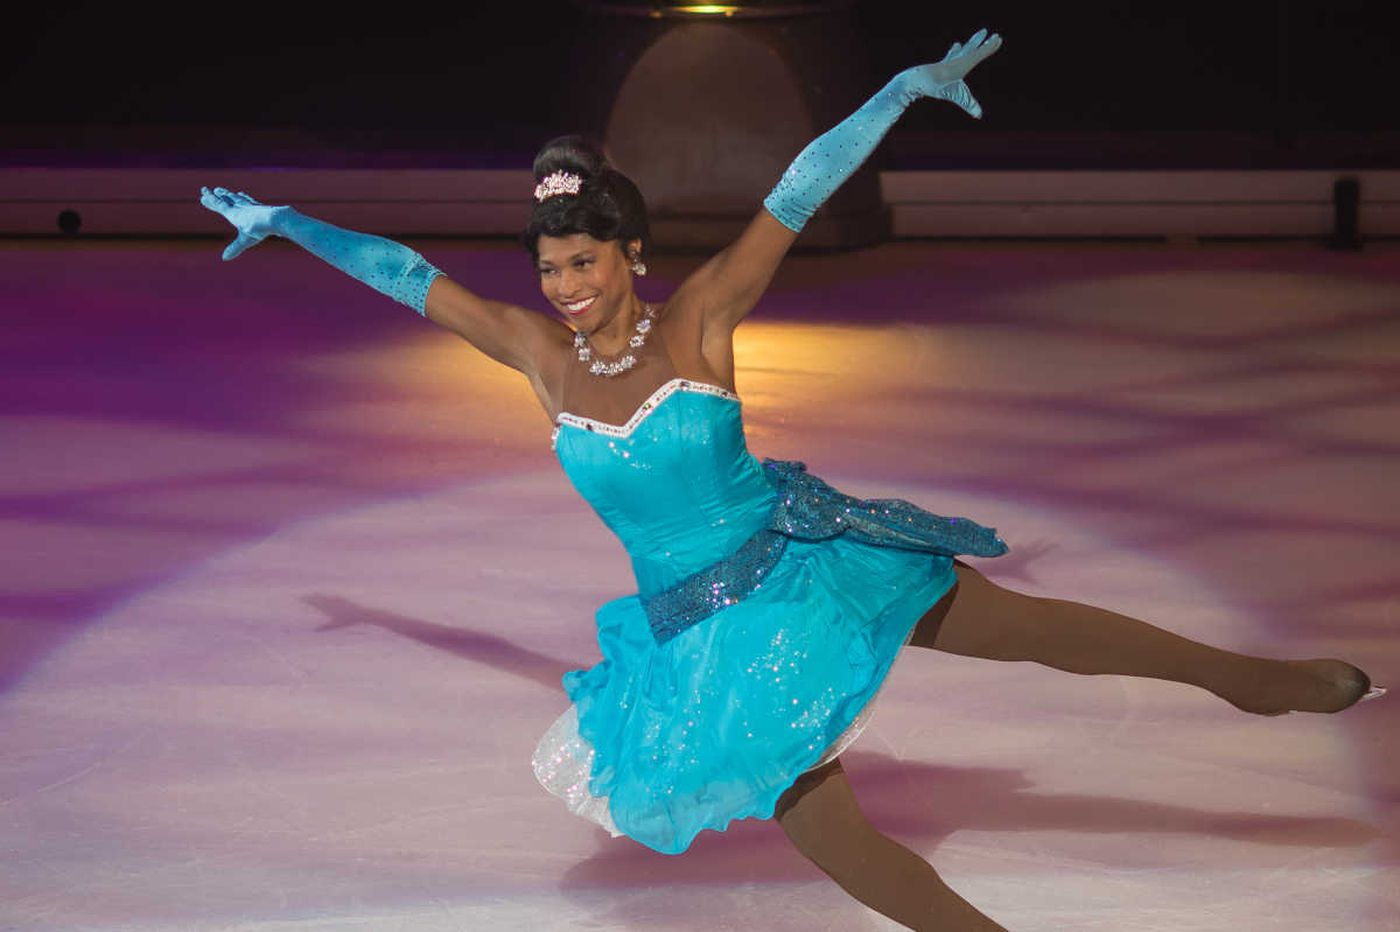 Disney on Ice's Princess Tiana hails from Wilmington: 'I feel really honored to play her'